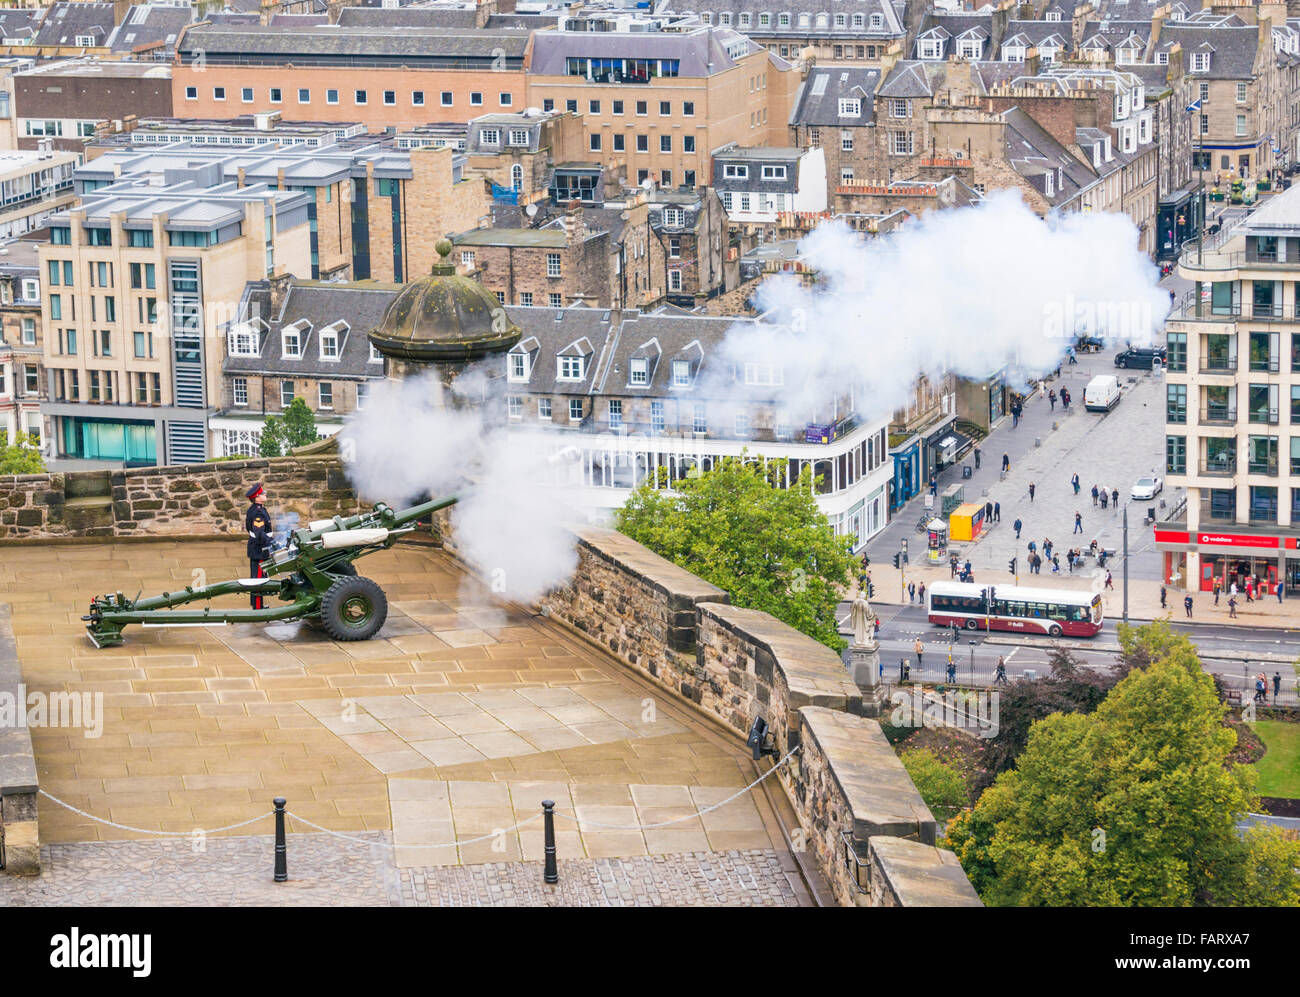 A royal artillery soldier fires the The One O'Clock Gun from Mill's Mount Battery Edinburgh castle Scotland - Stock Image